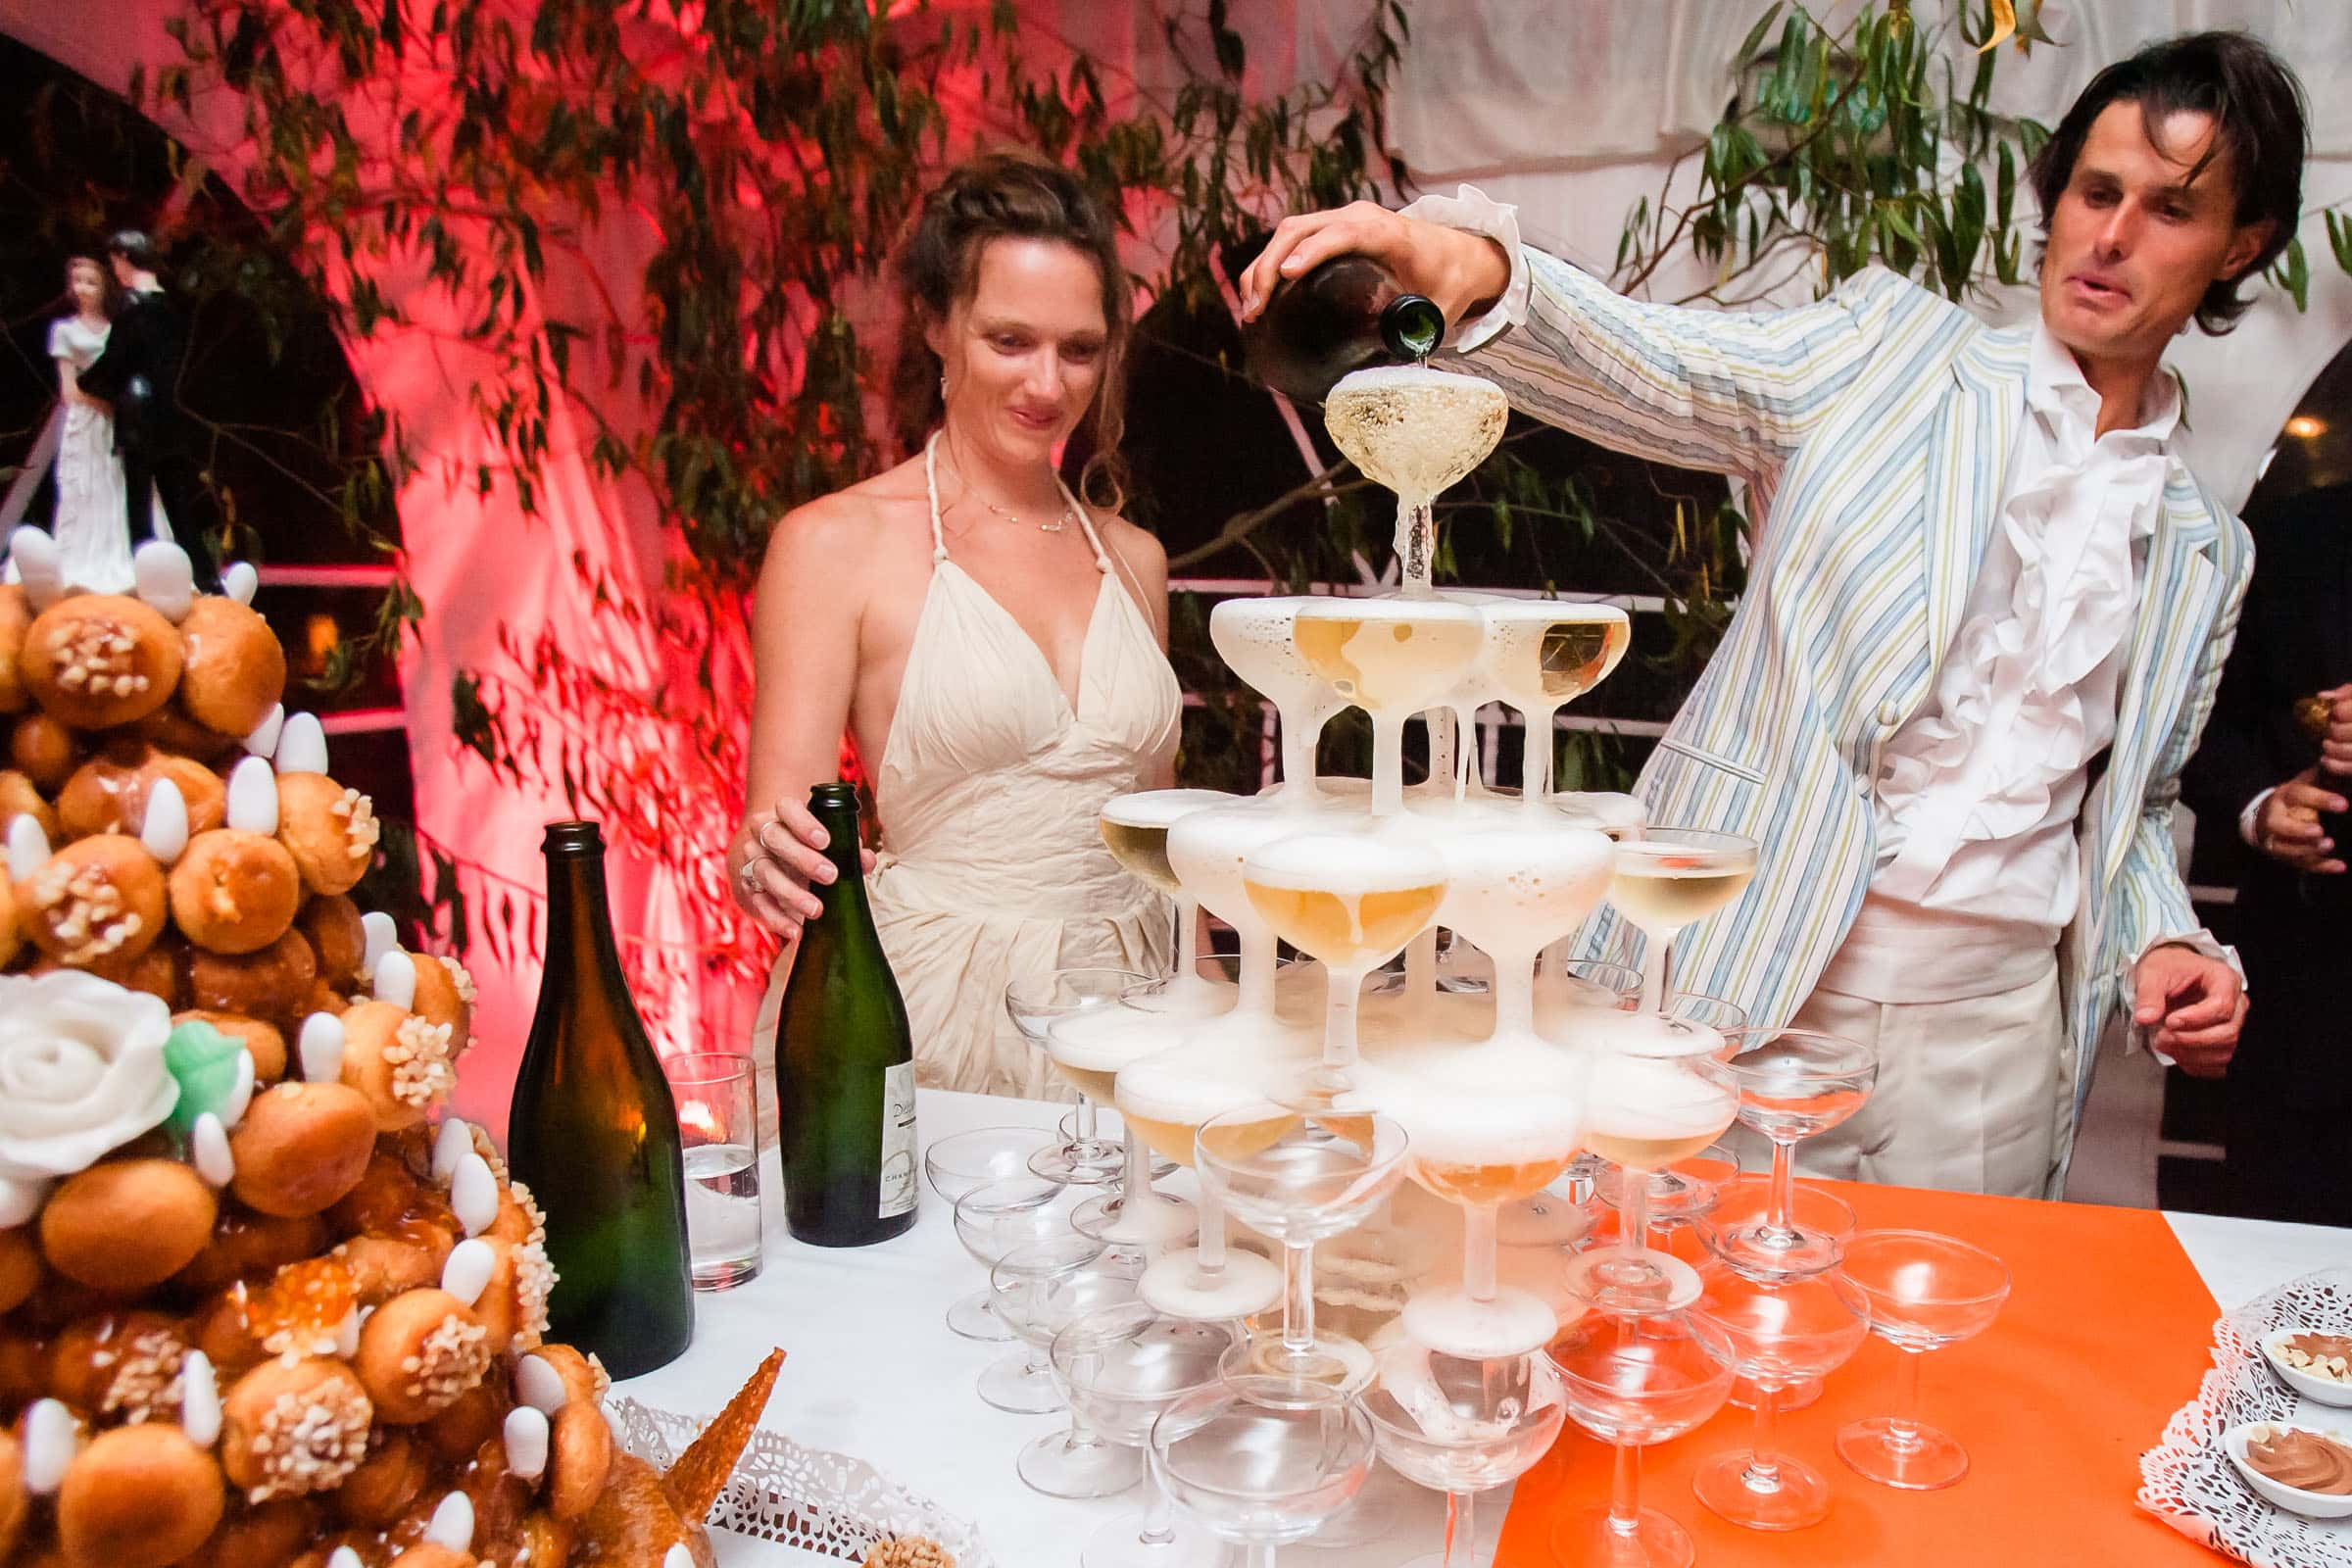 Bride and groom pouring their champagne pyramid during their south of france chateau wedding at Manoir des Prevanches